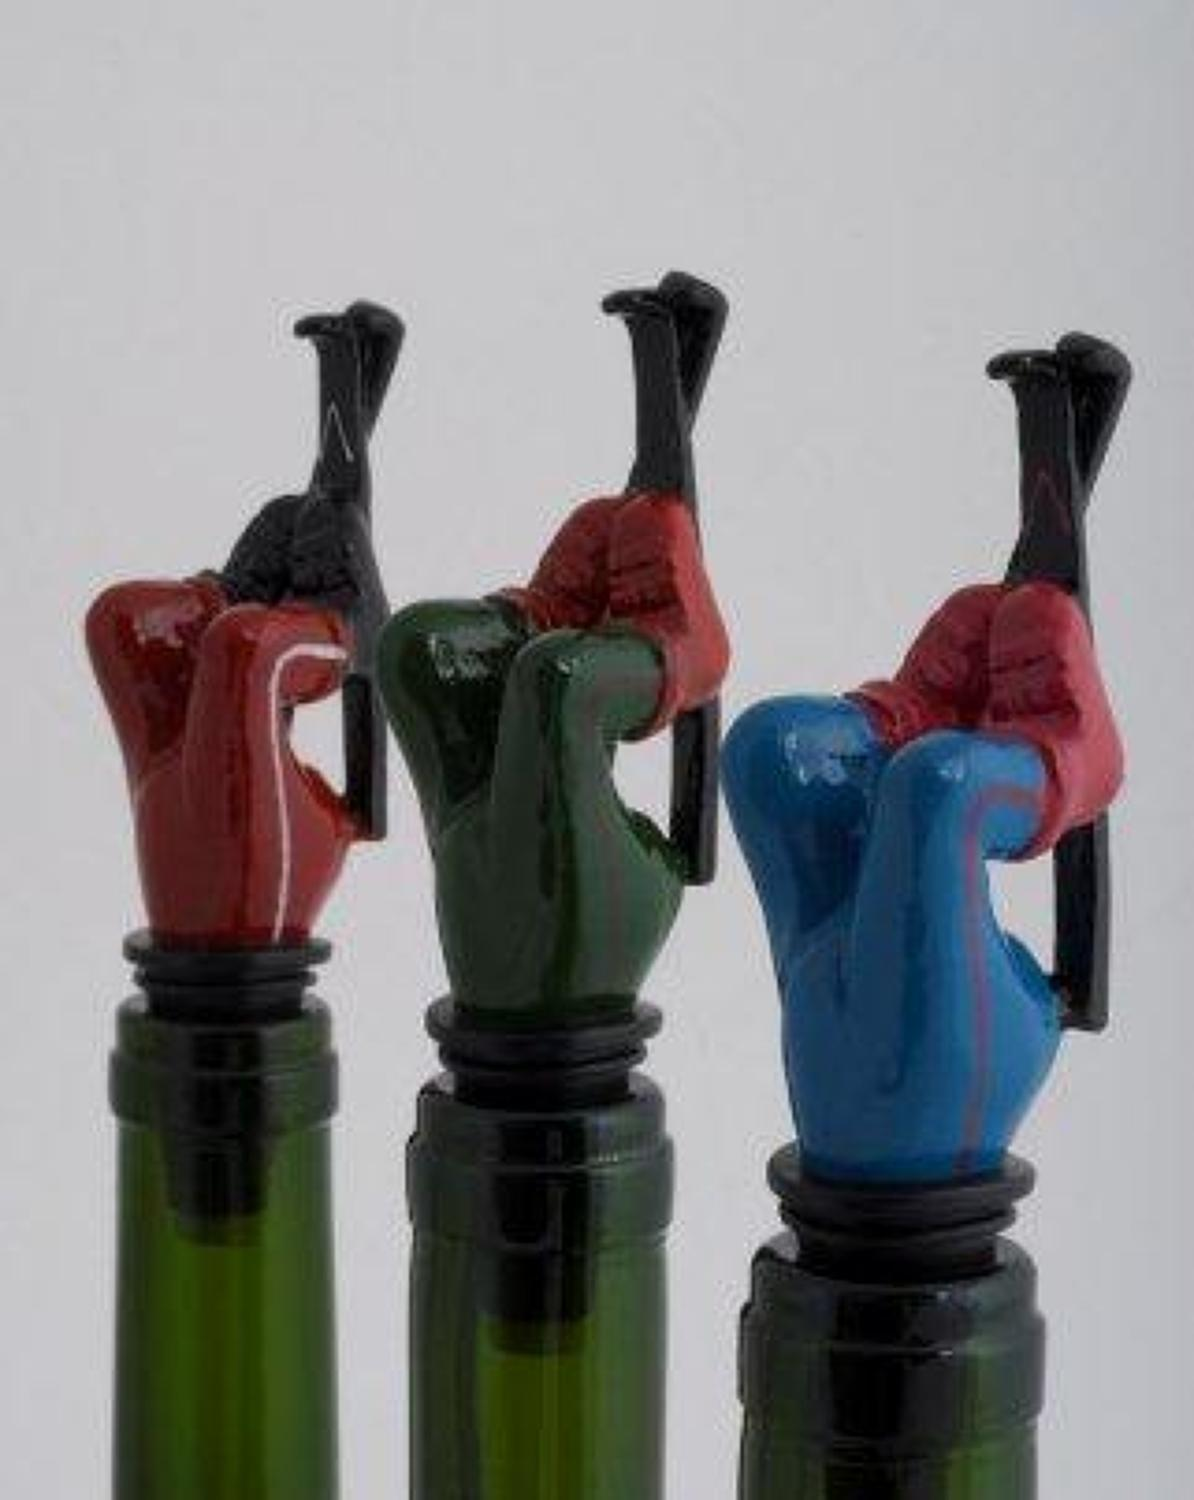 Skier bottle stopper